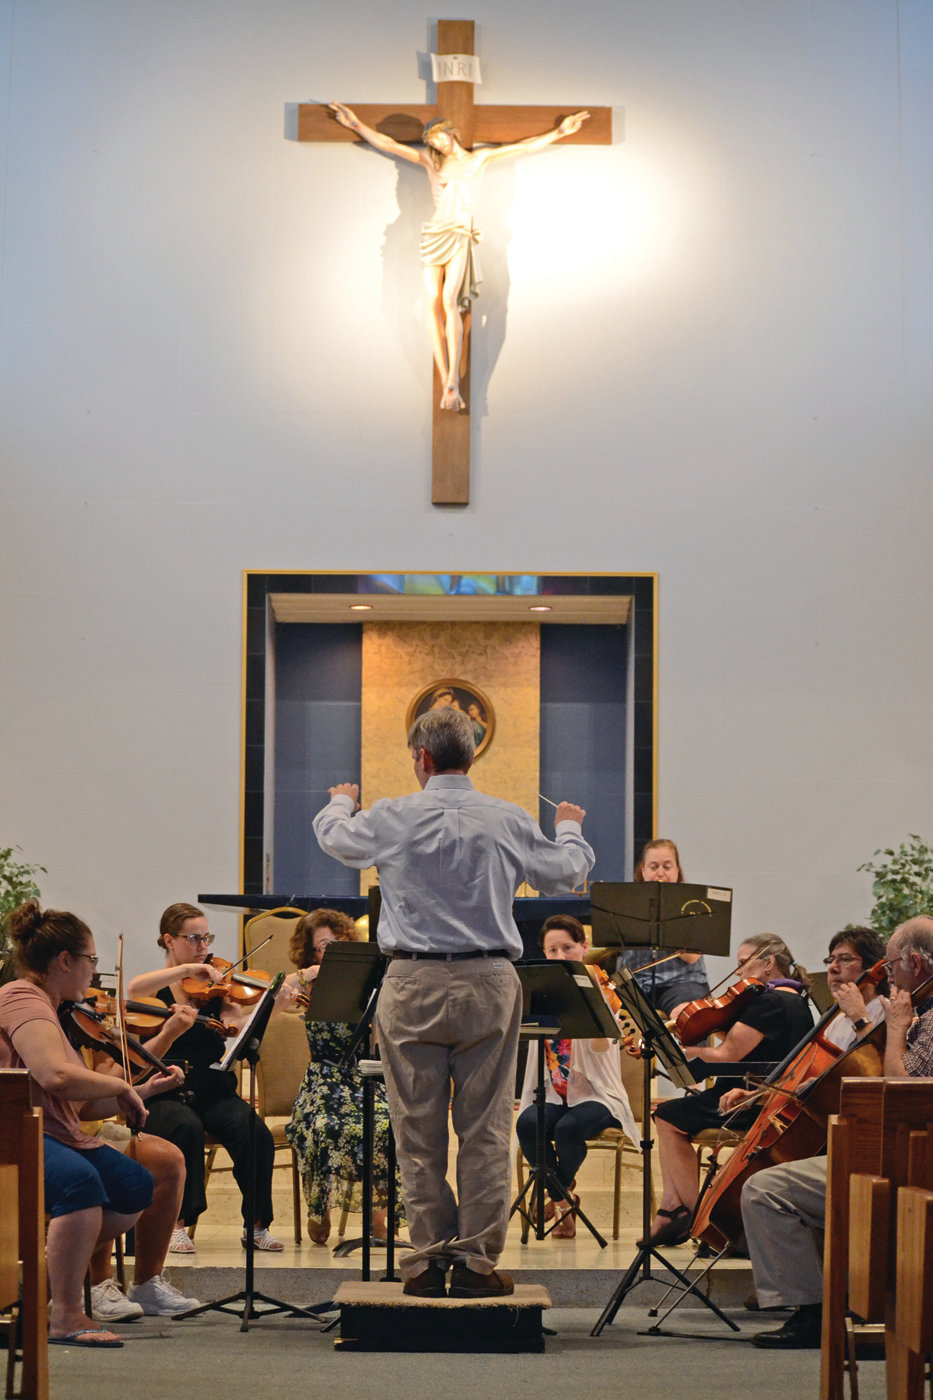 GRAND STAGE: Dr. Brian Cardany leads the orchestra, set up along the front altar of St. Kevin Church. The acoustics within the church were something music fanatics would appreciate.